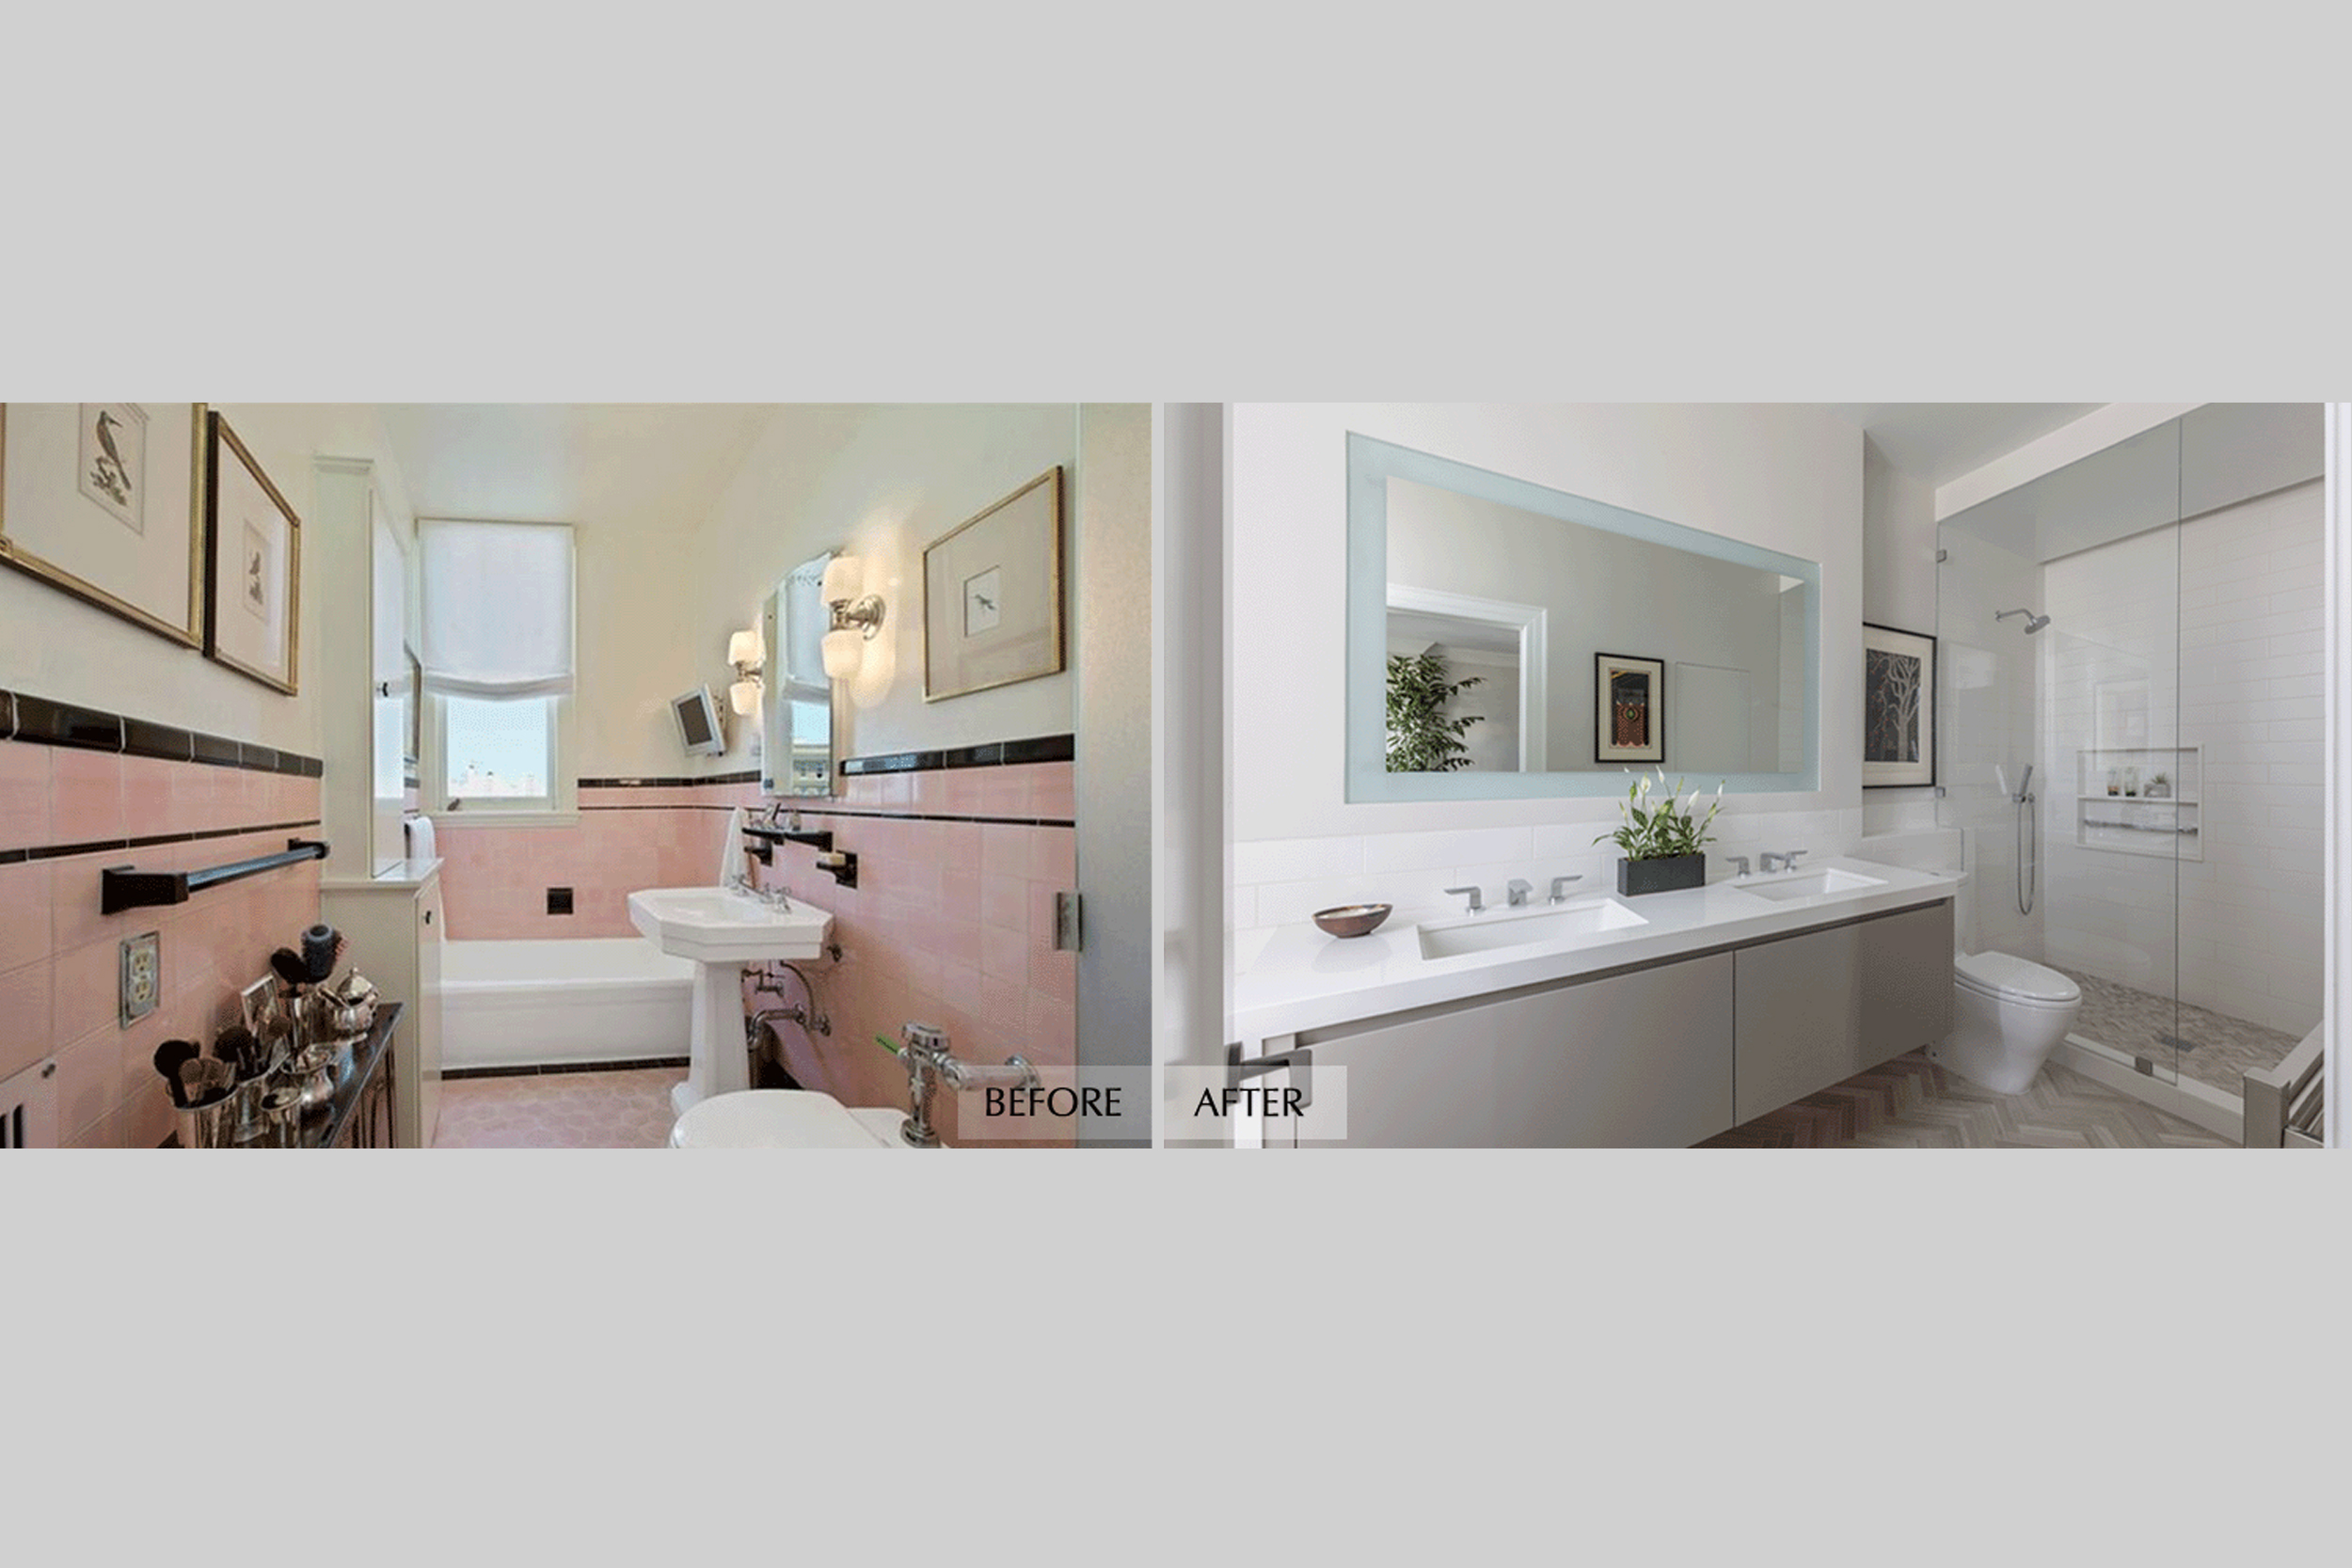 DESIGN415 | San Francisco Pacific Heights Before and After Master Bathroom Remodel